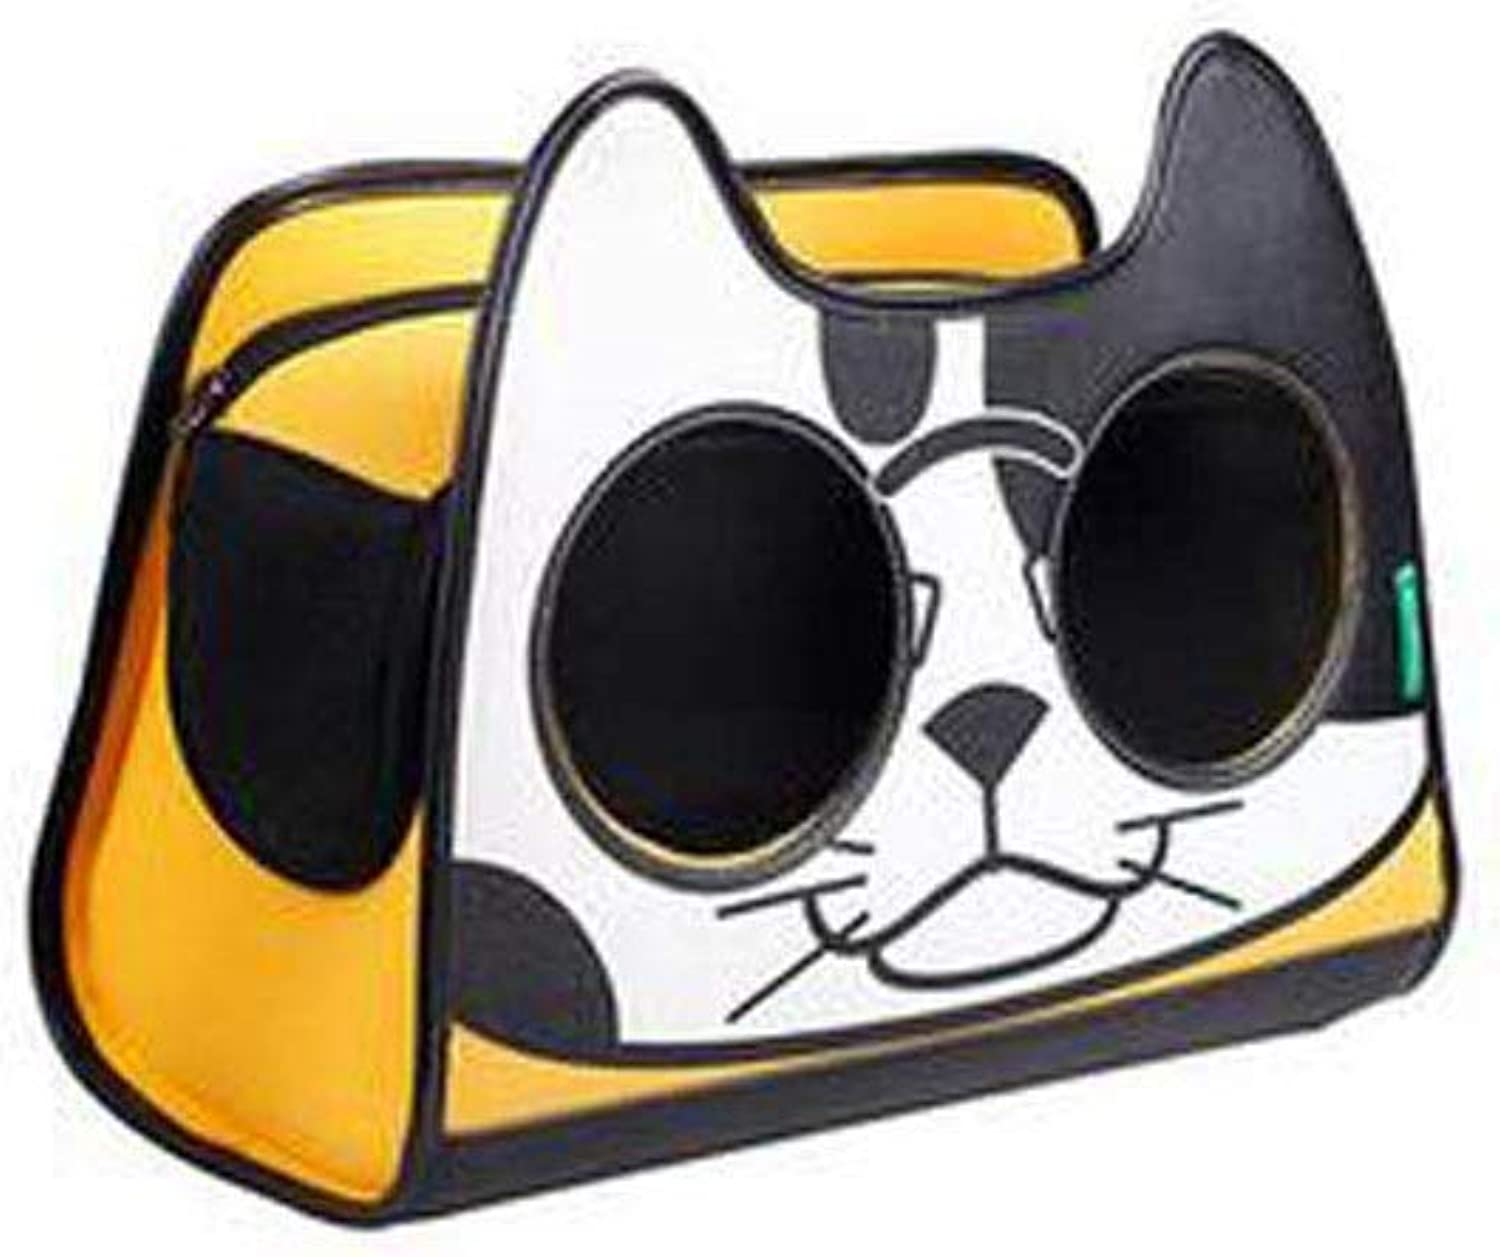 Portable Canvas pet Bag, Out Carrying case, Suitable for Travel, Camping, Shopping, Suitable for Cats, Pomeranian Small and Medium Pets (color   Yellow)